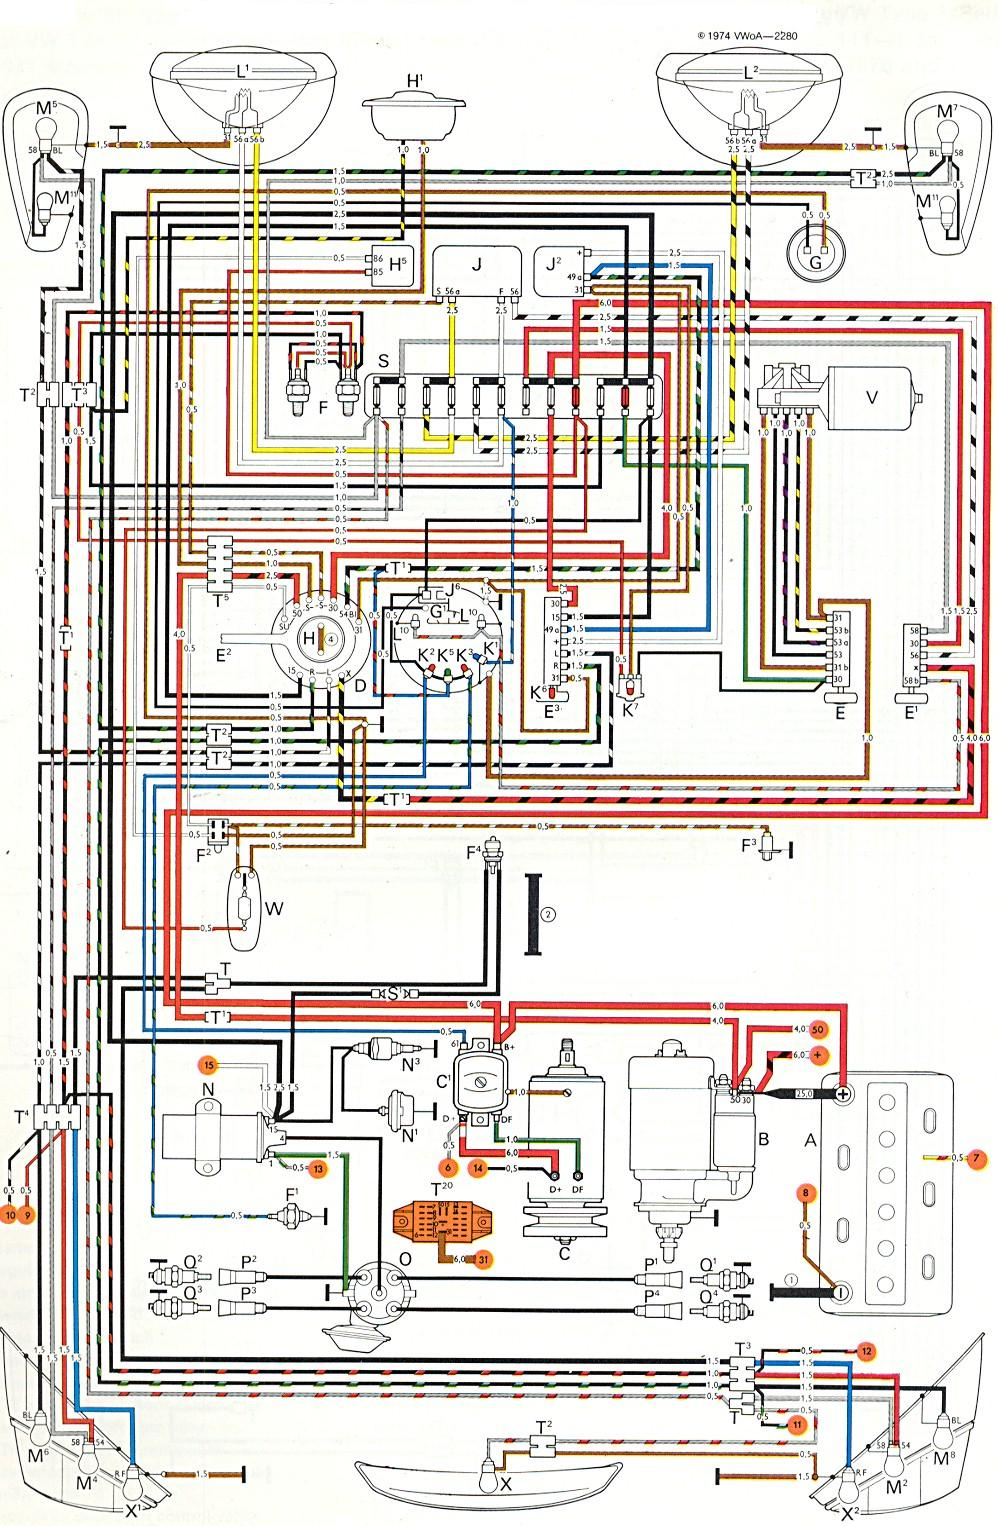 vw 1971 fuse diagram wiring diagram weekvw super beetle wiring diagram 1971 vw beetle wiring diagram [ 999 x 1526 Pixel ]